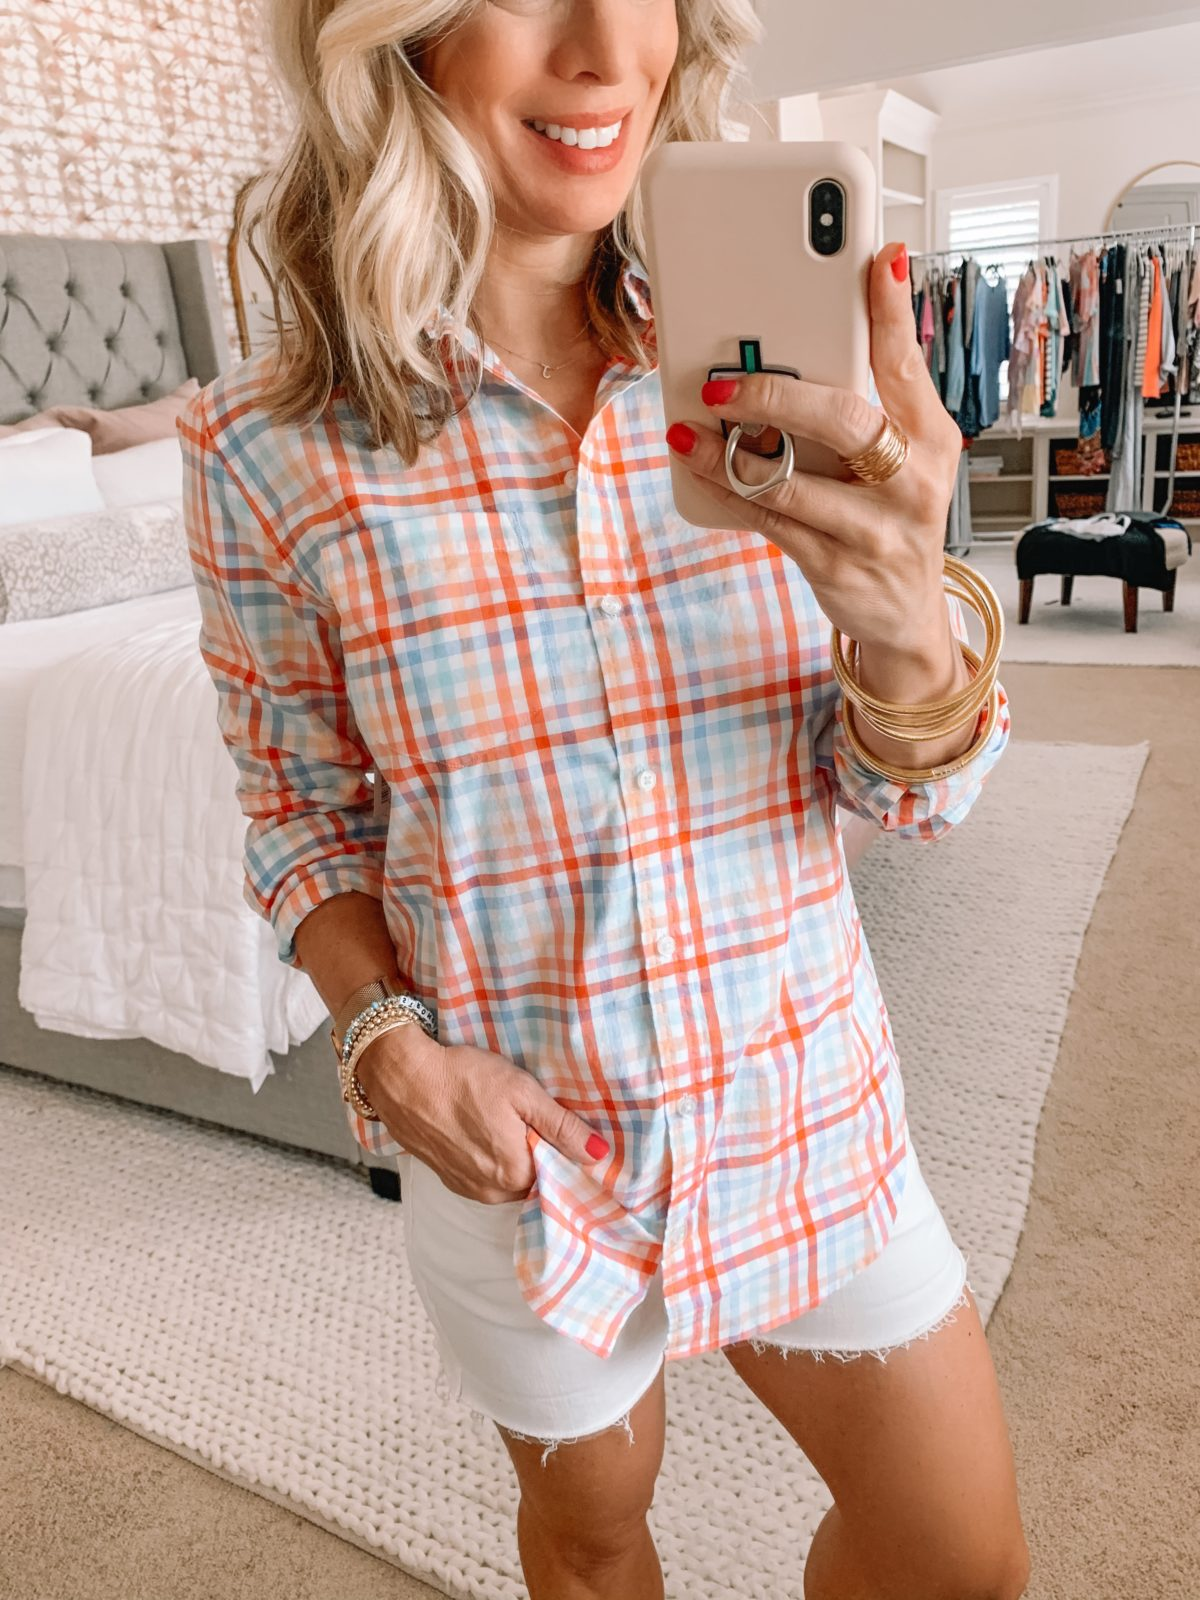 Amazon Fashion Finds, Rainbow Check Long Sleeved Top, White Denim Shorts